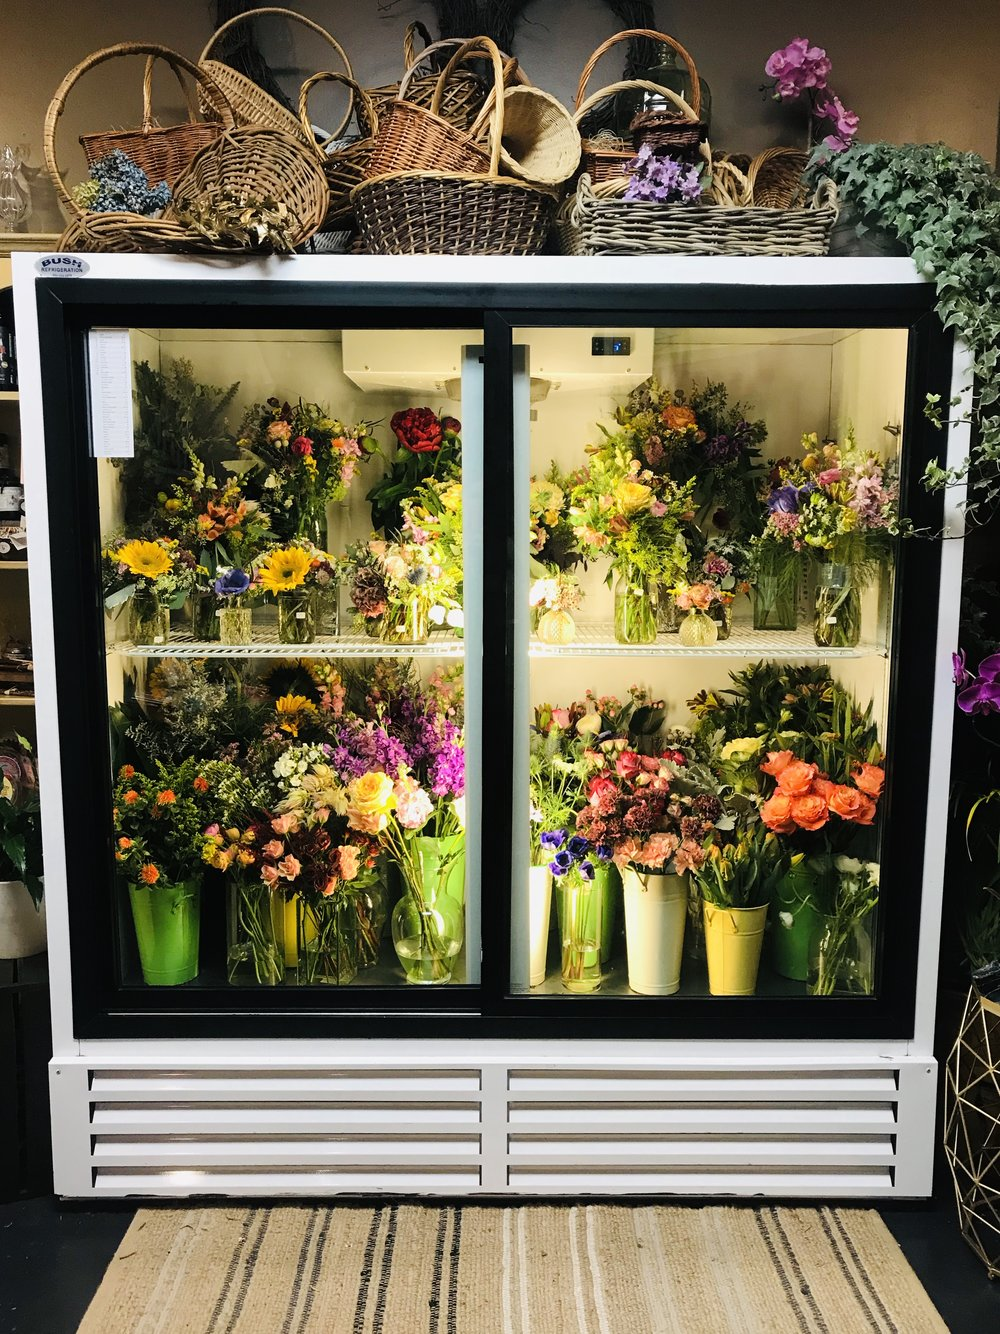 A full flower fridge!